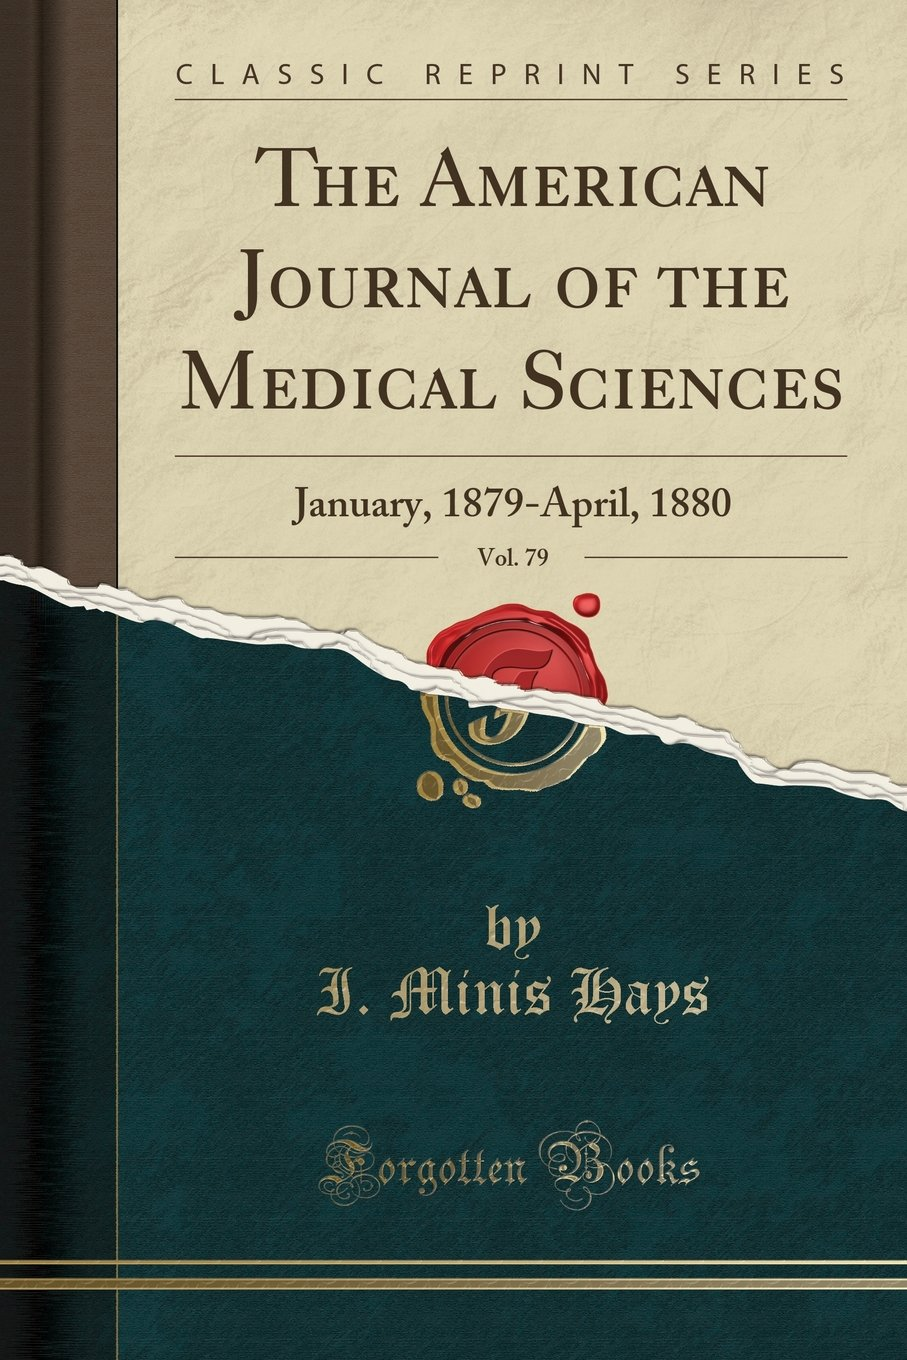 The American Journal of the Medical Sciences, Vol. 79: January, 1879-April, 1880 (Classic Reprint) PDF